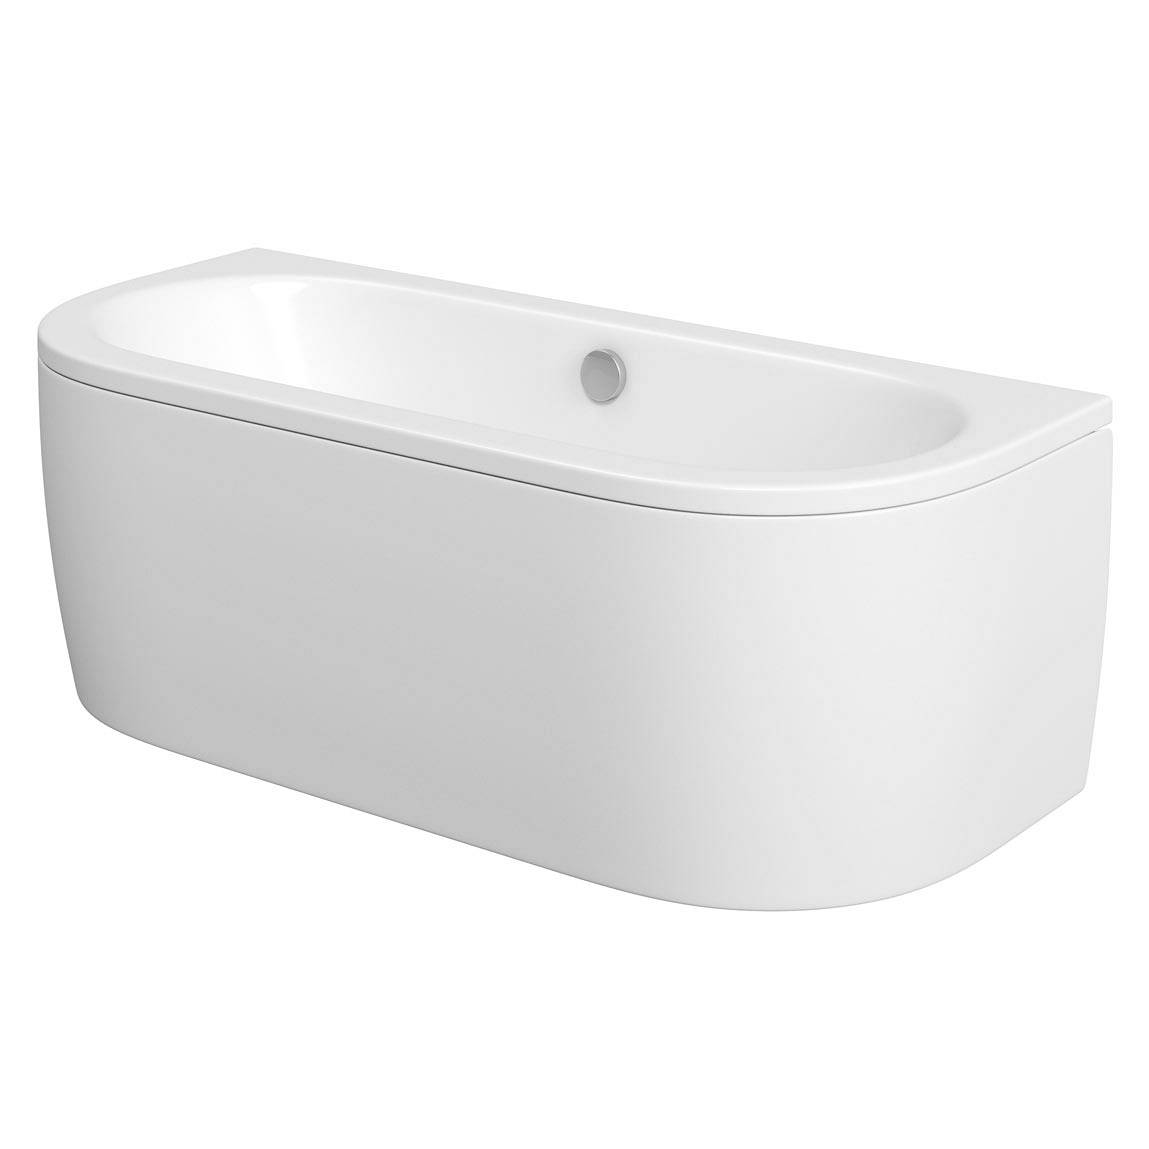 Image of Cayman D Shaped Doubled Ended Back To Wall Bath Special Offer